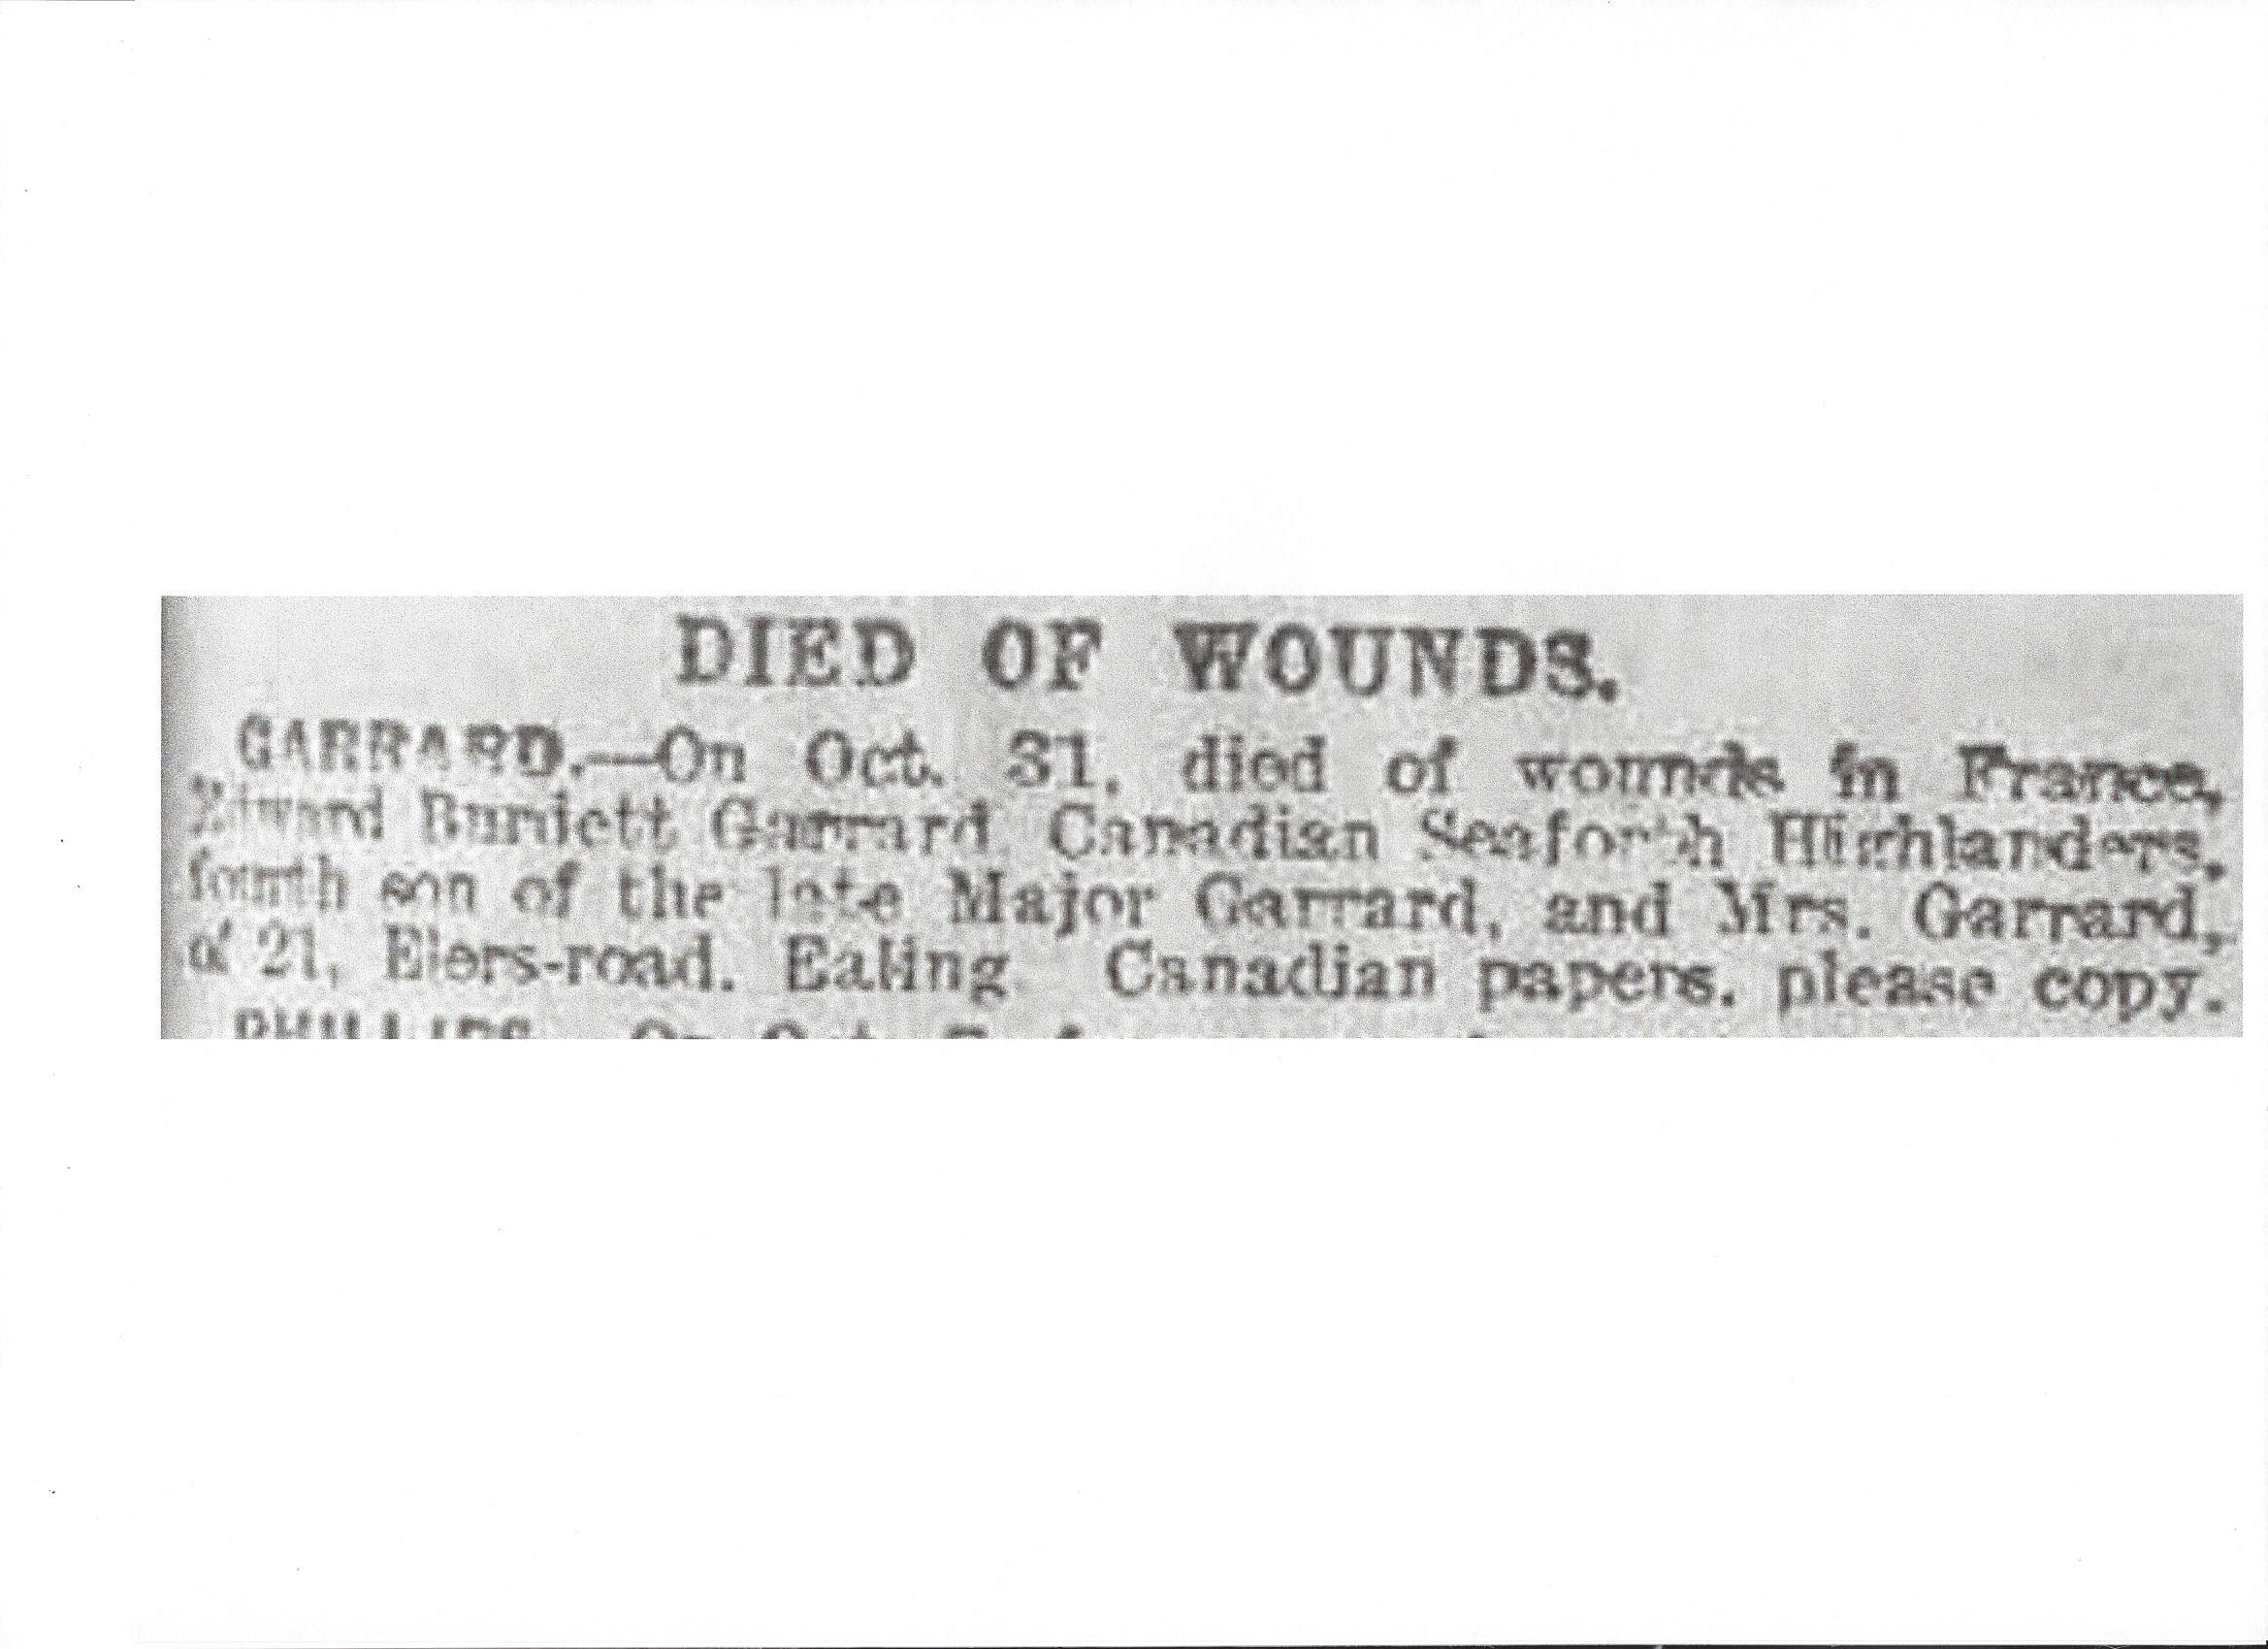 Newspaper clipping– Newspaper clipping from the Daily Telegraph of November 9, 1917. Image taken from web address of http://www.telegraph.co.uk/news/ww1-archive/12214930/Daily-Telegraph-November-9-1917.html